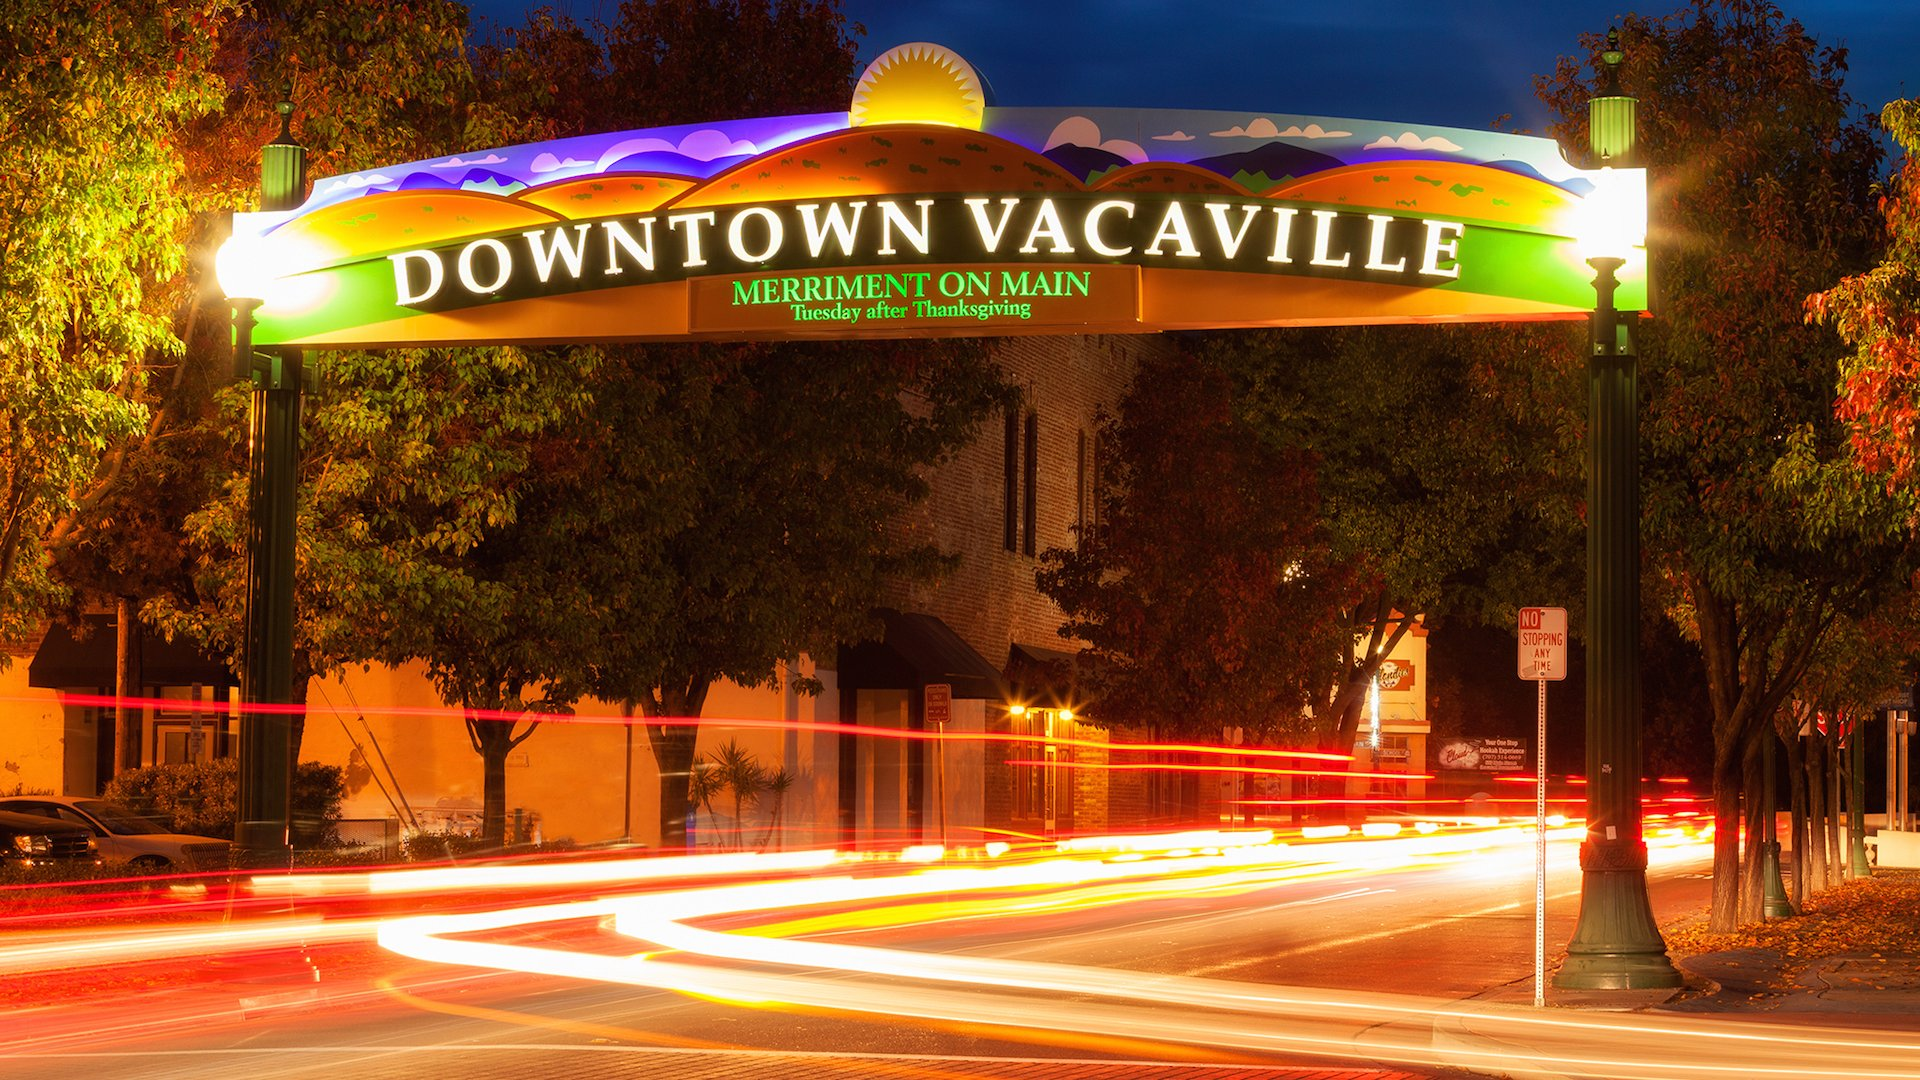 Experience a diverse selection of shops and dining options in charming downtown